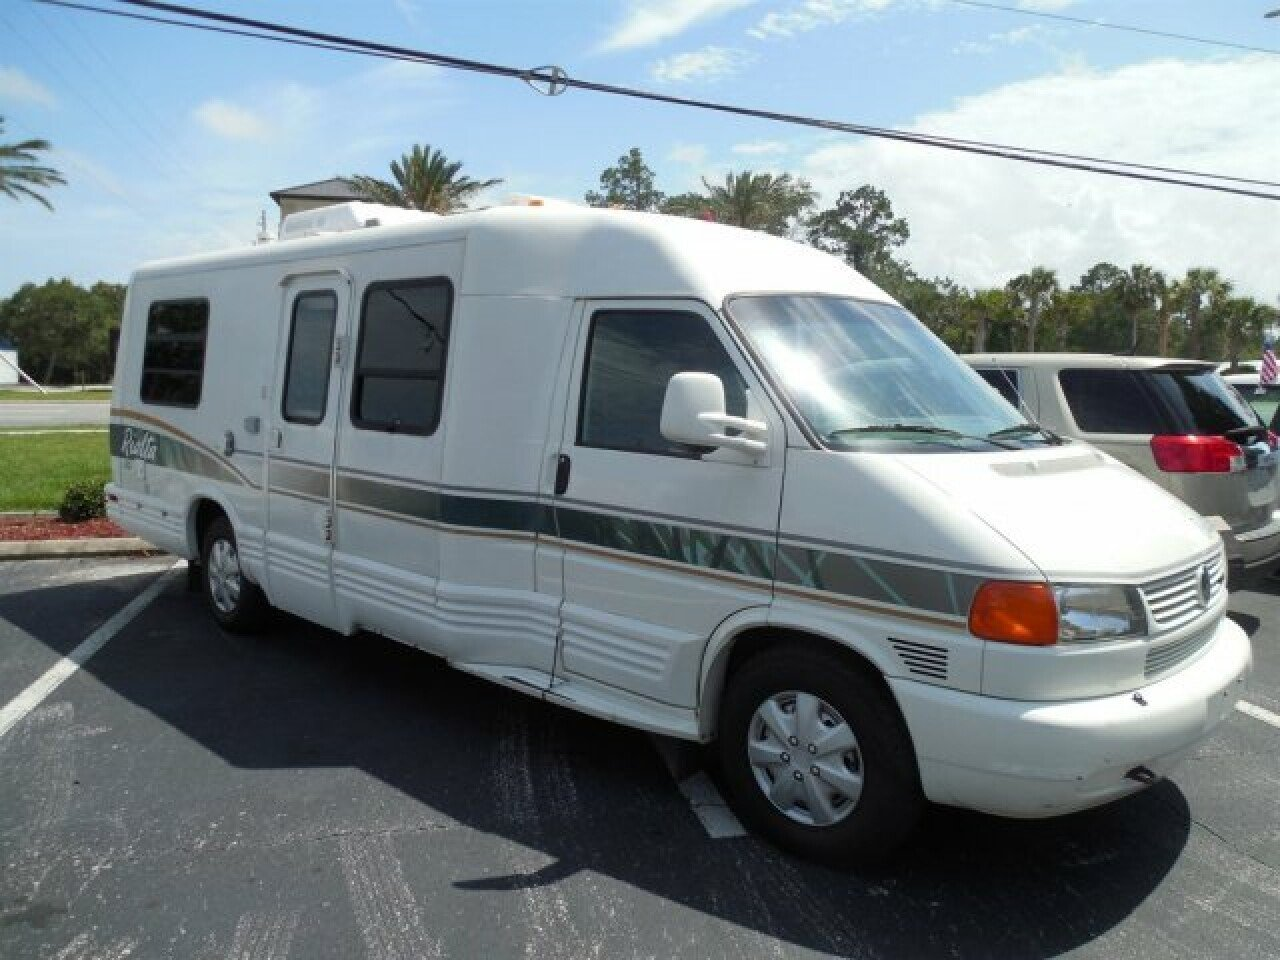 Gmc Motorhome For Sale >> 1998 Winnebago Rialta for sale near Jacksonville, Florida 32250 - RVs on Autotrader